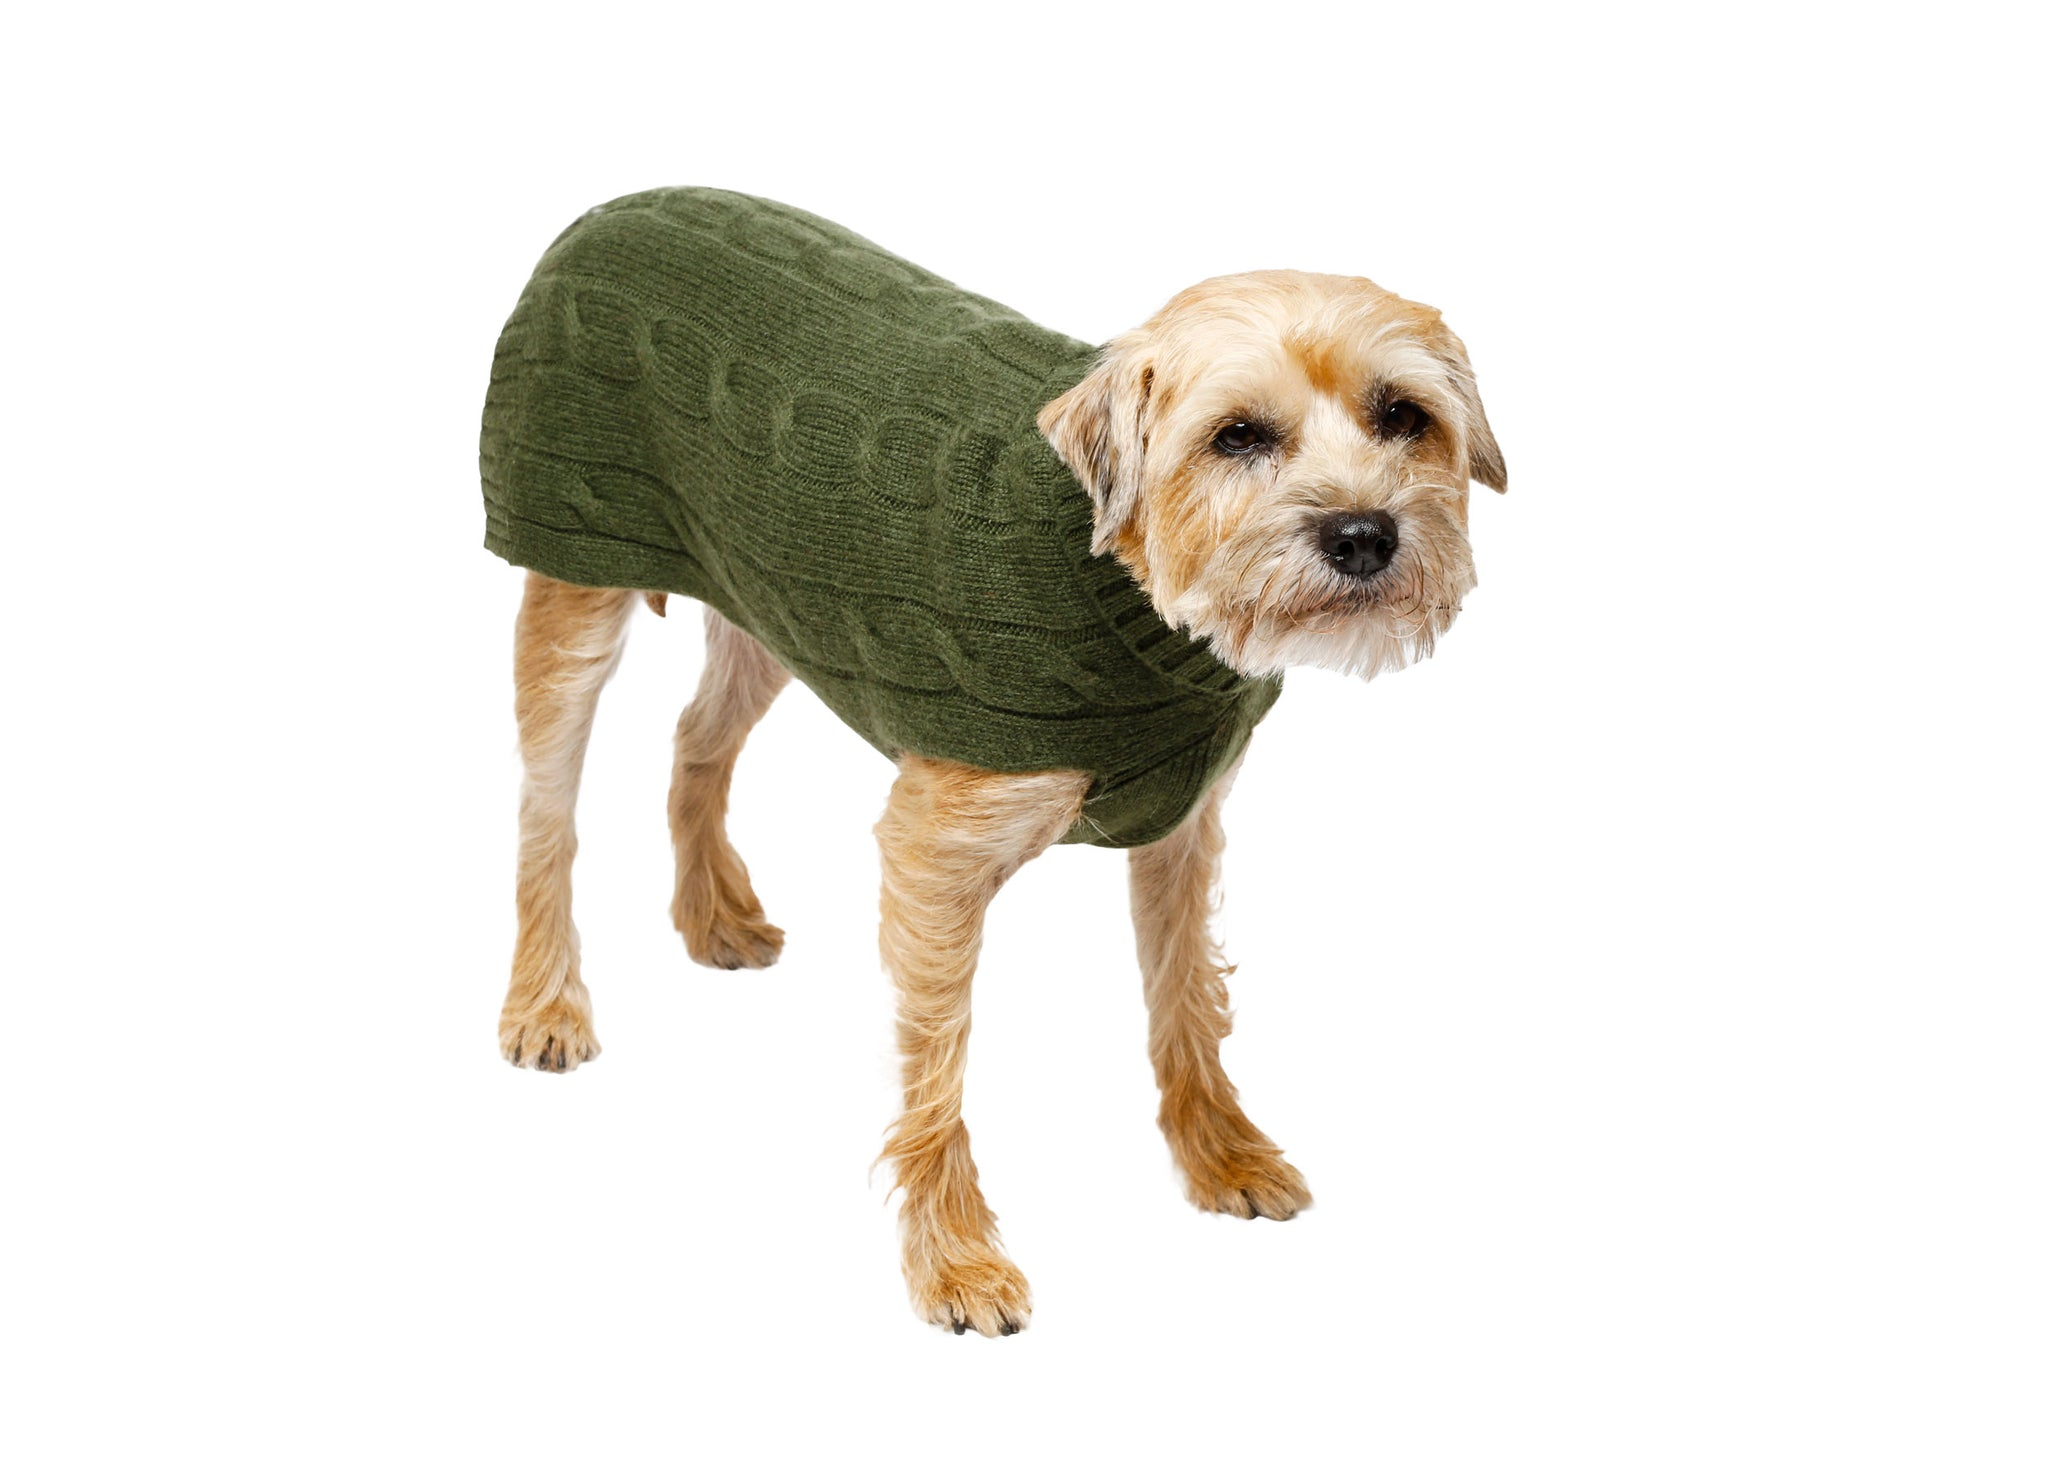 Cashmere Dog Sweater - Brown & Green